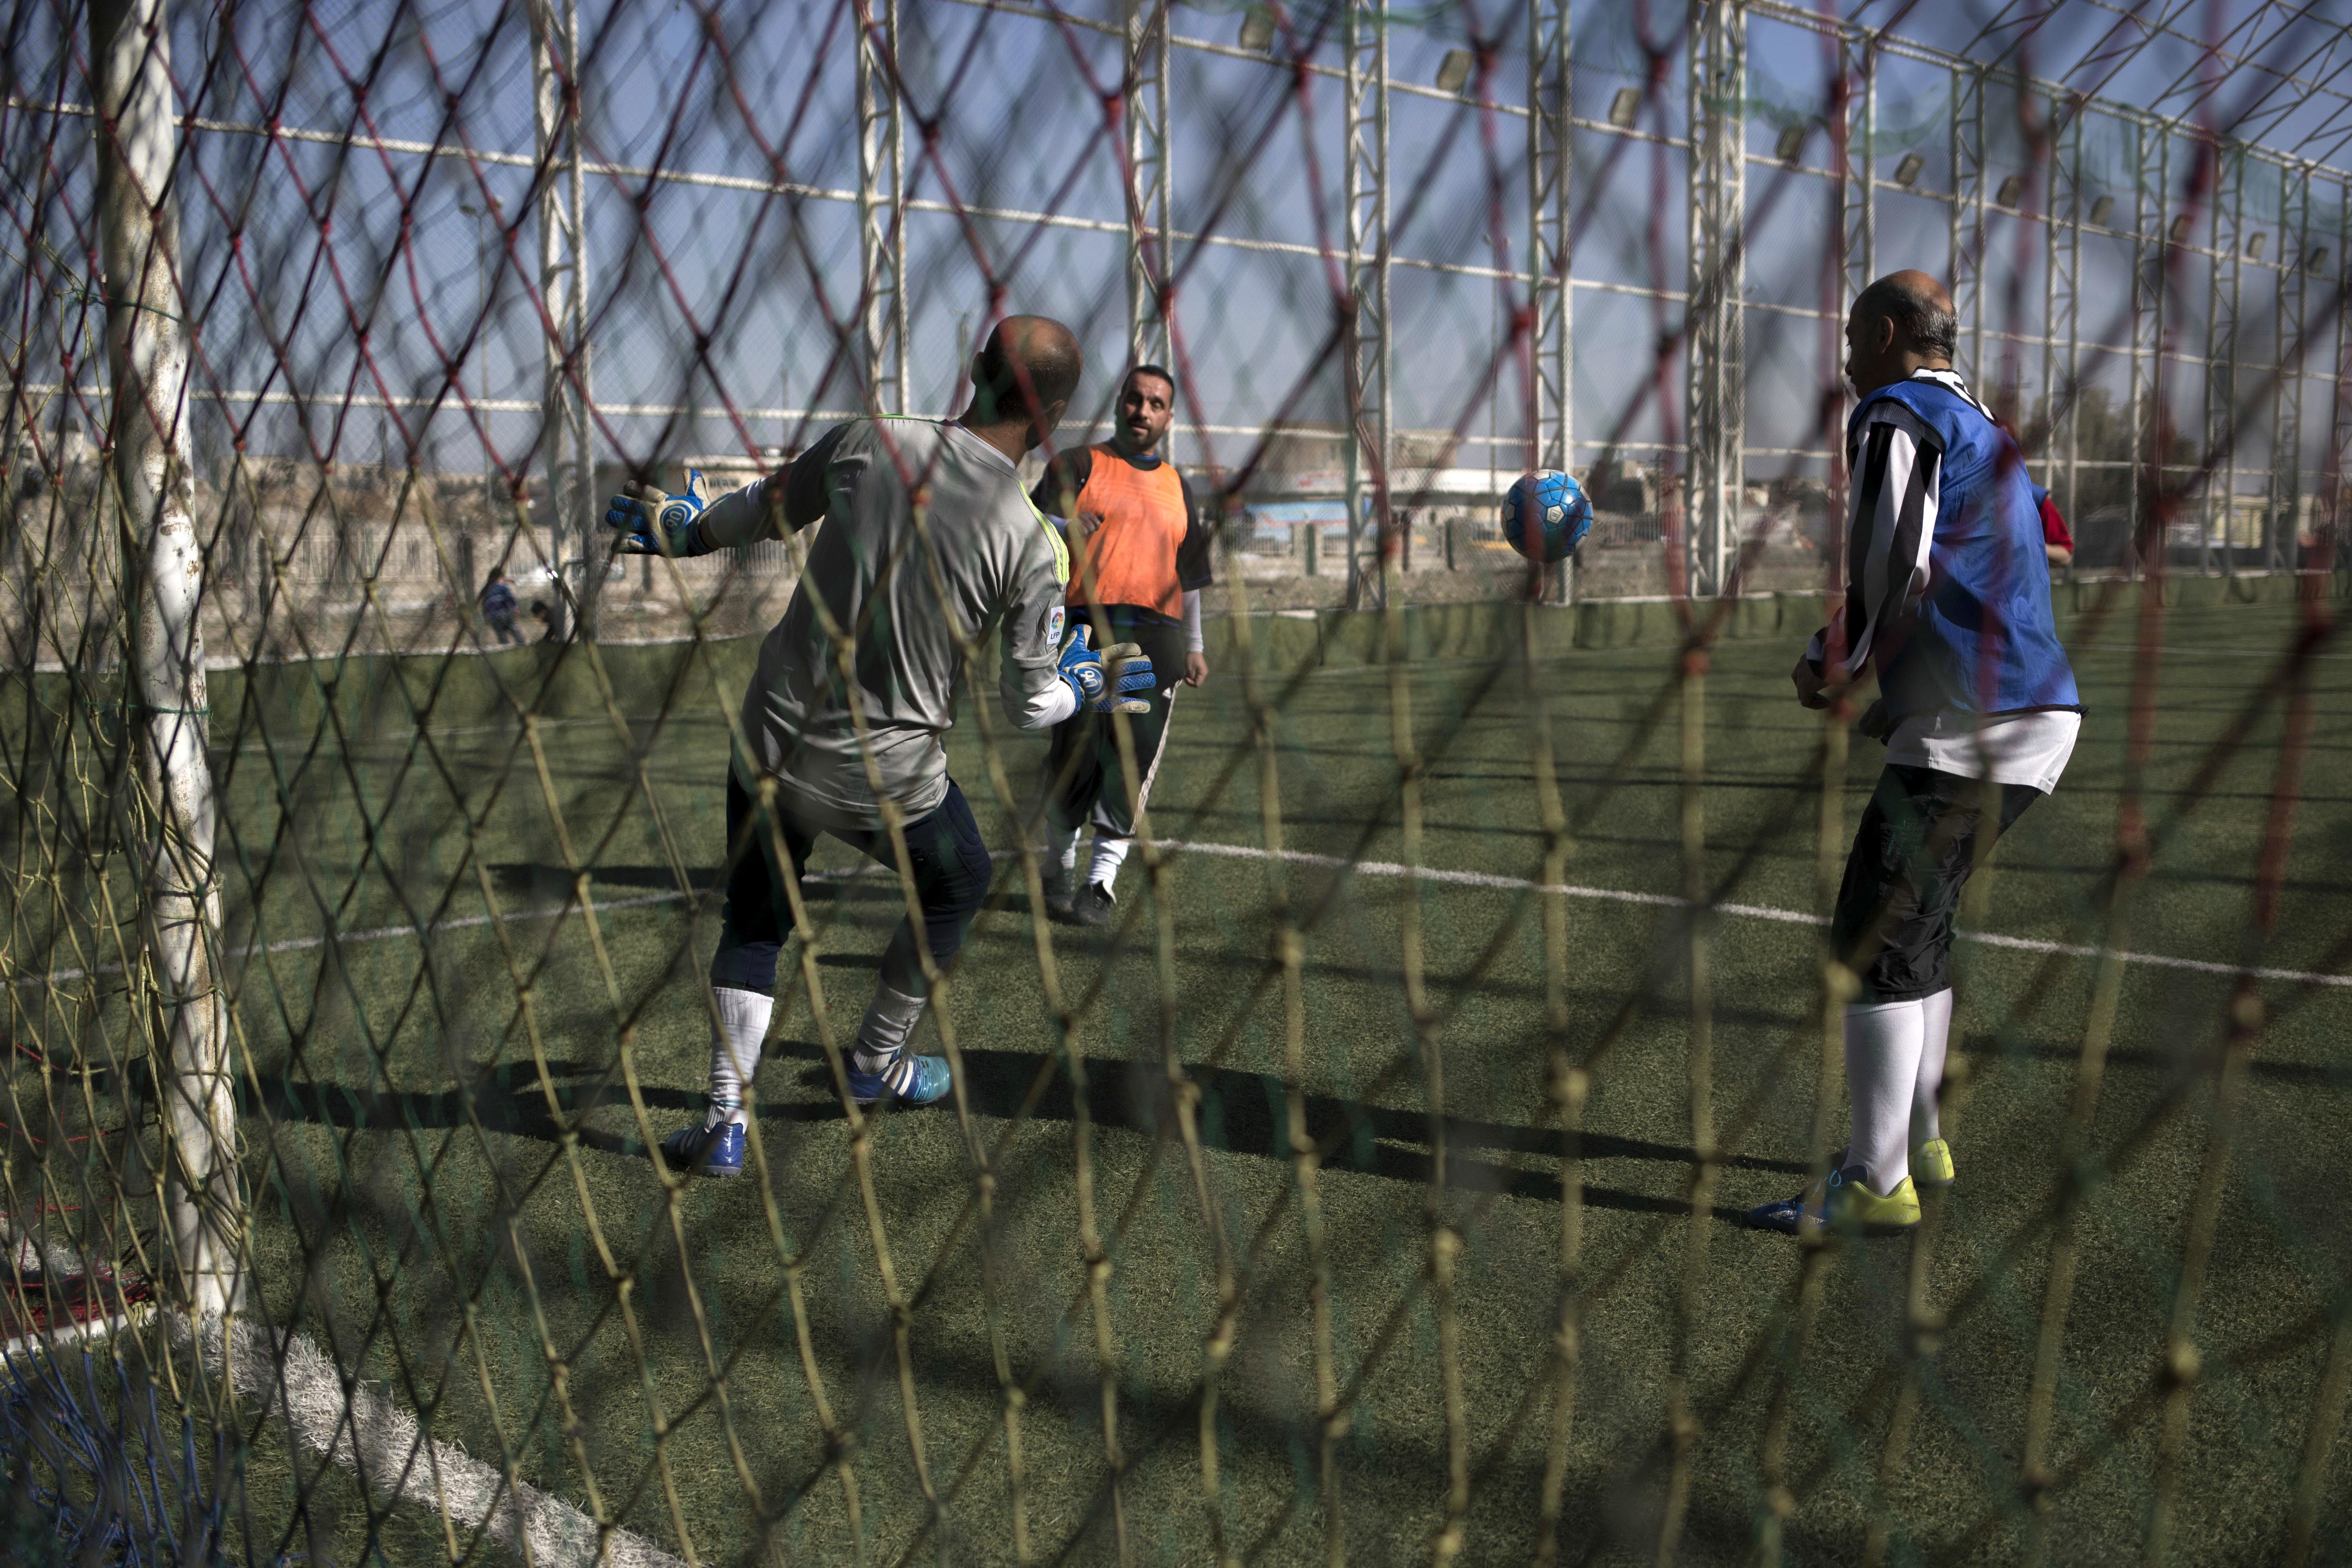 Mosul residents play soccer on a pitch in the liberated eastern part of the city on Feb. 8, 2017. (AP Photo/Bram Janssen)